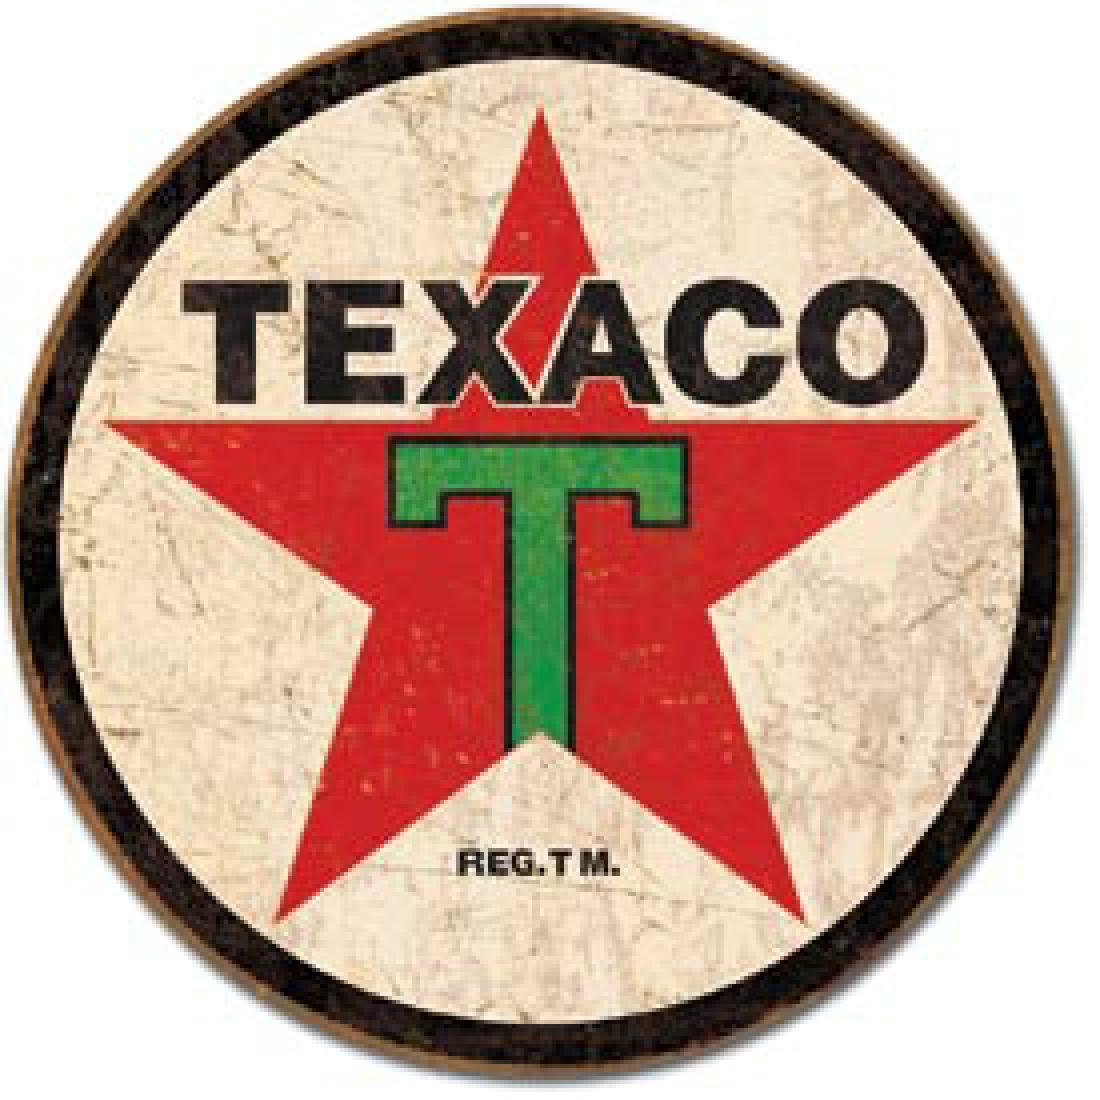 "TEXAC0 METAL SIGN 12"" ROUND"